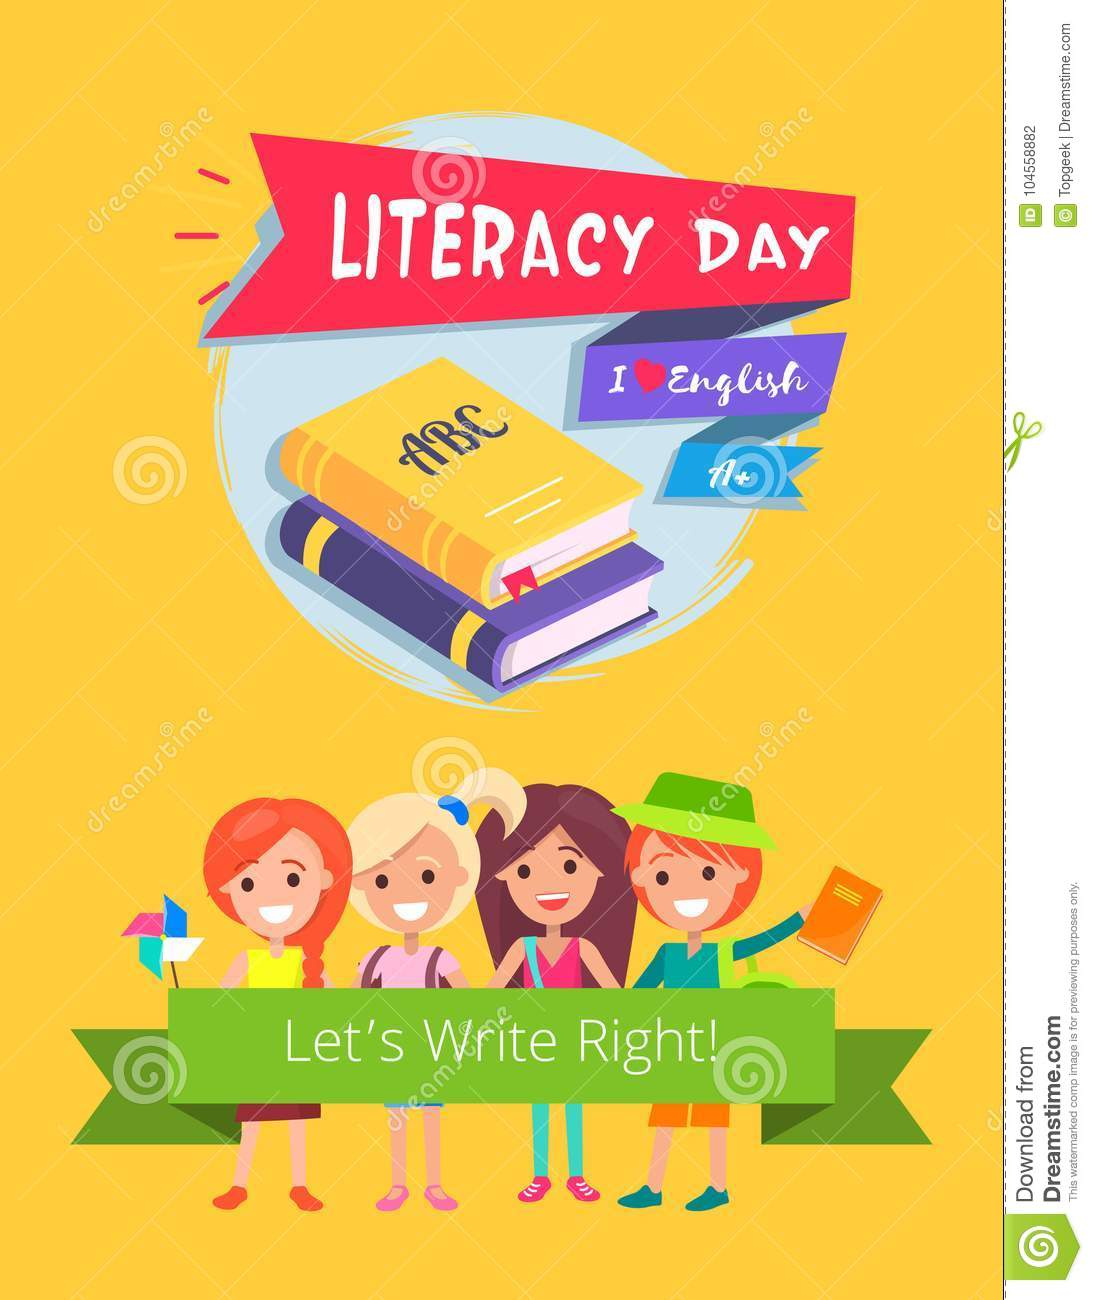 Do Children Have Right To Literacy >> Literacy Day Celebration Vector Illustration Stock Vector